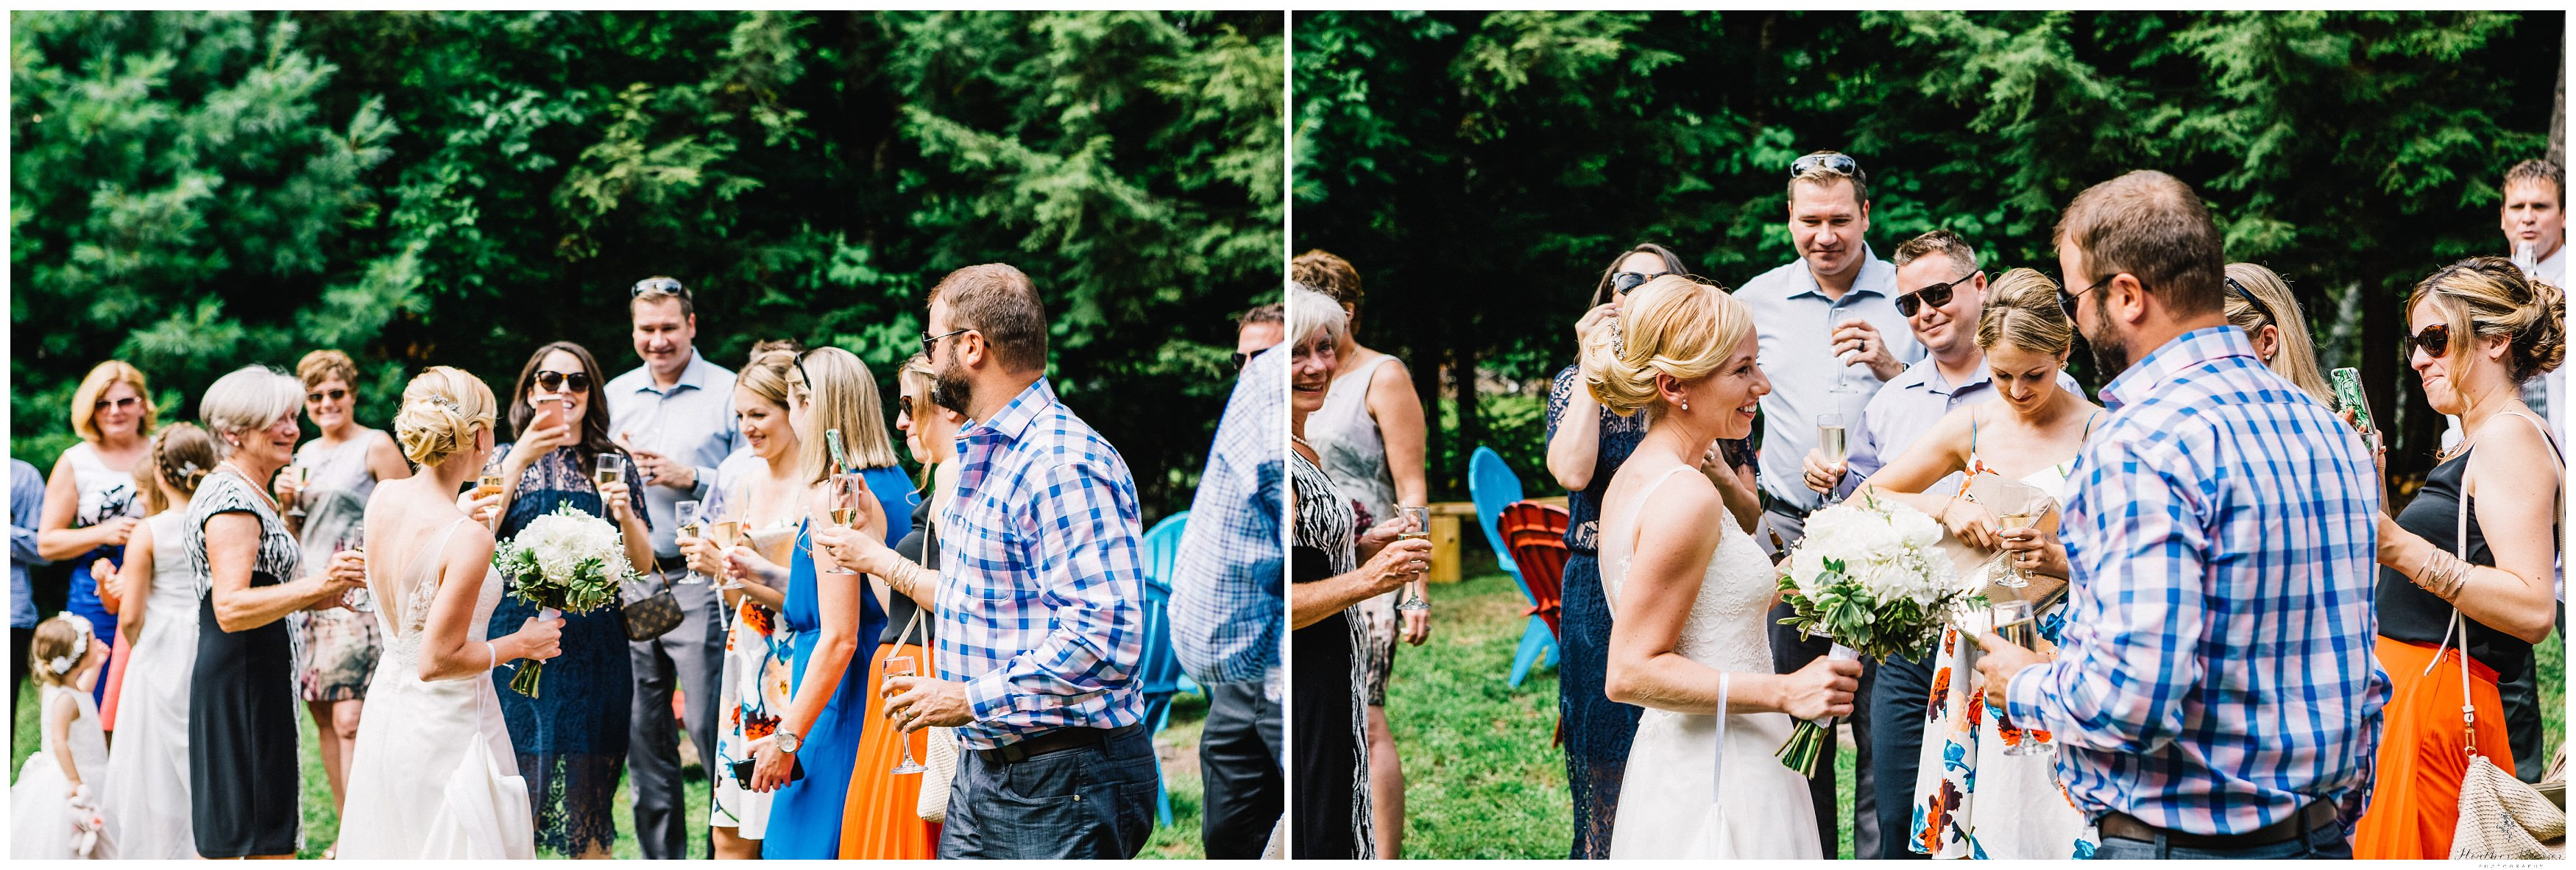 Haliburton Cottage Wedding_1297-1.jpg